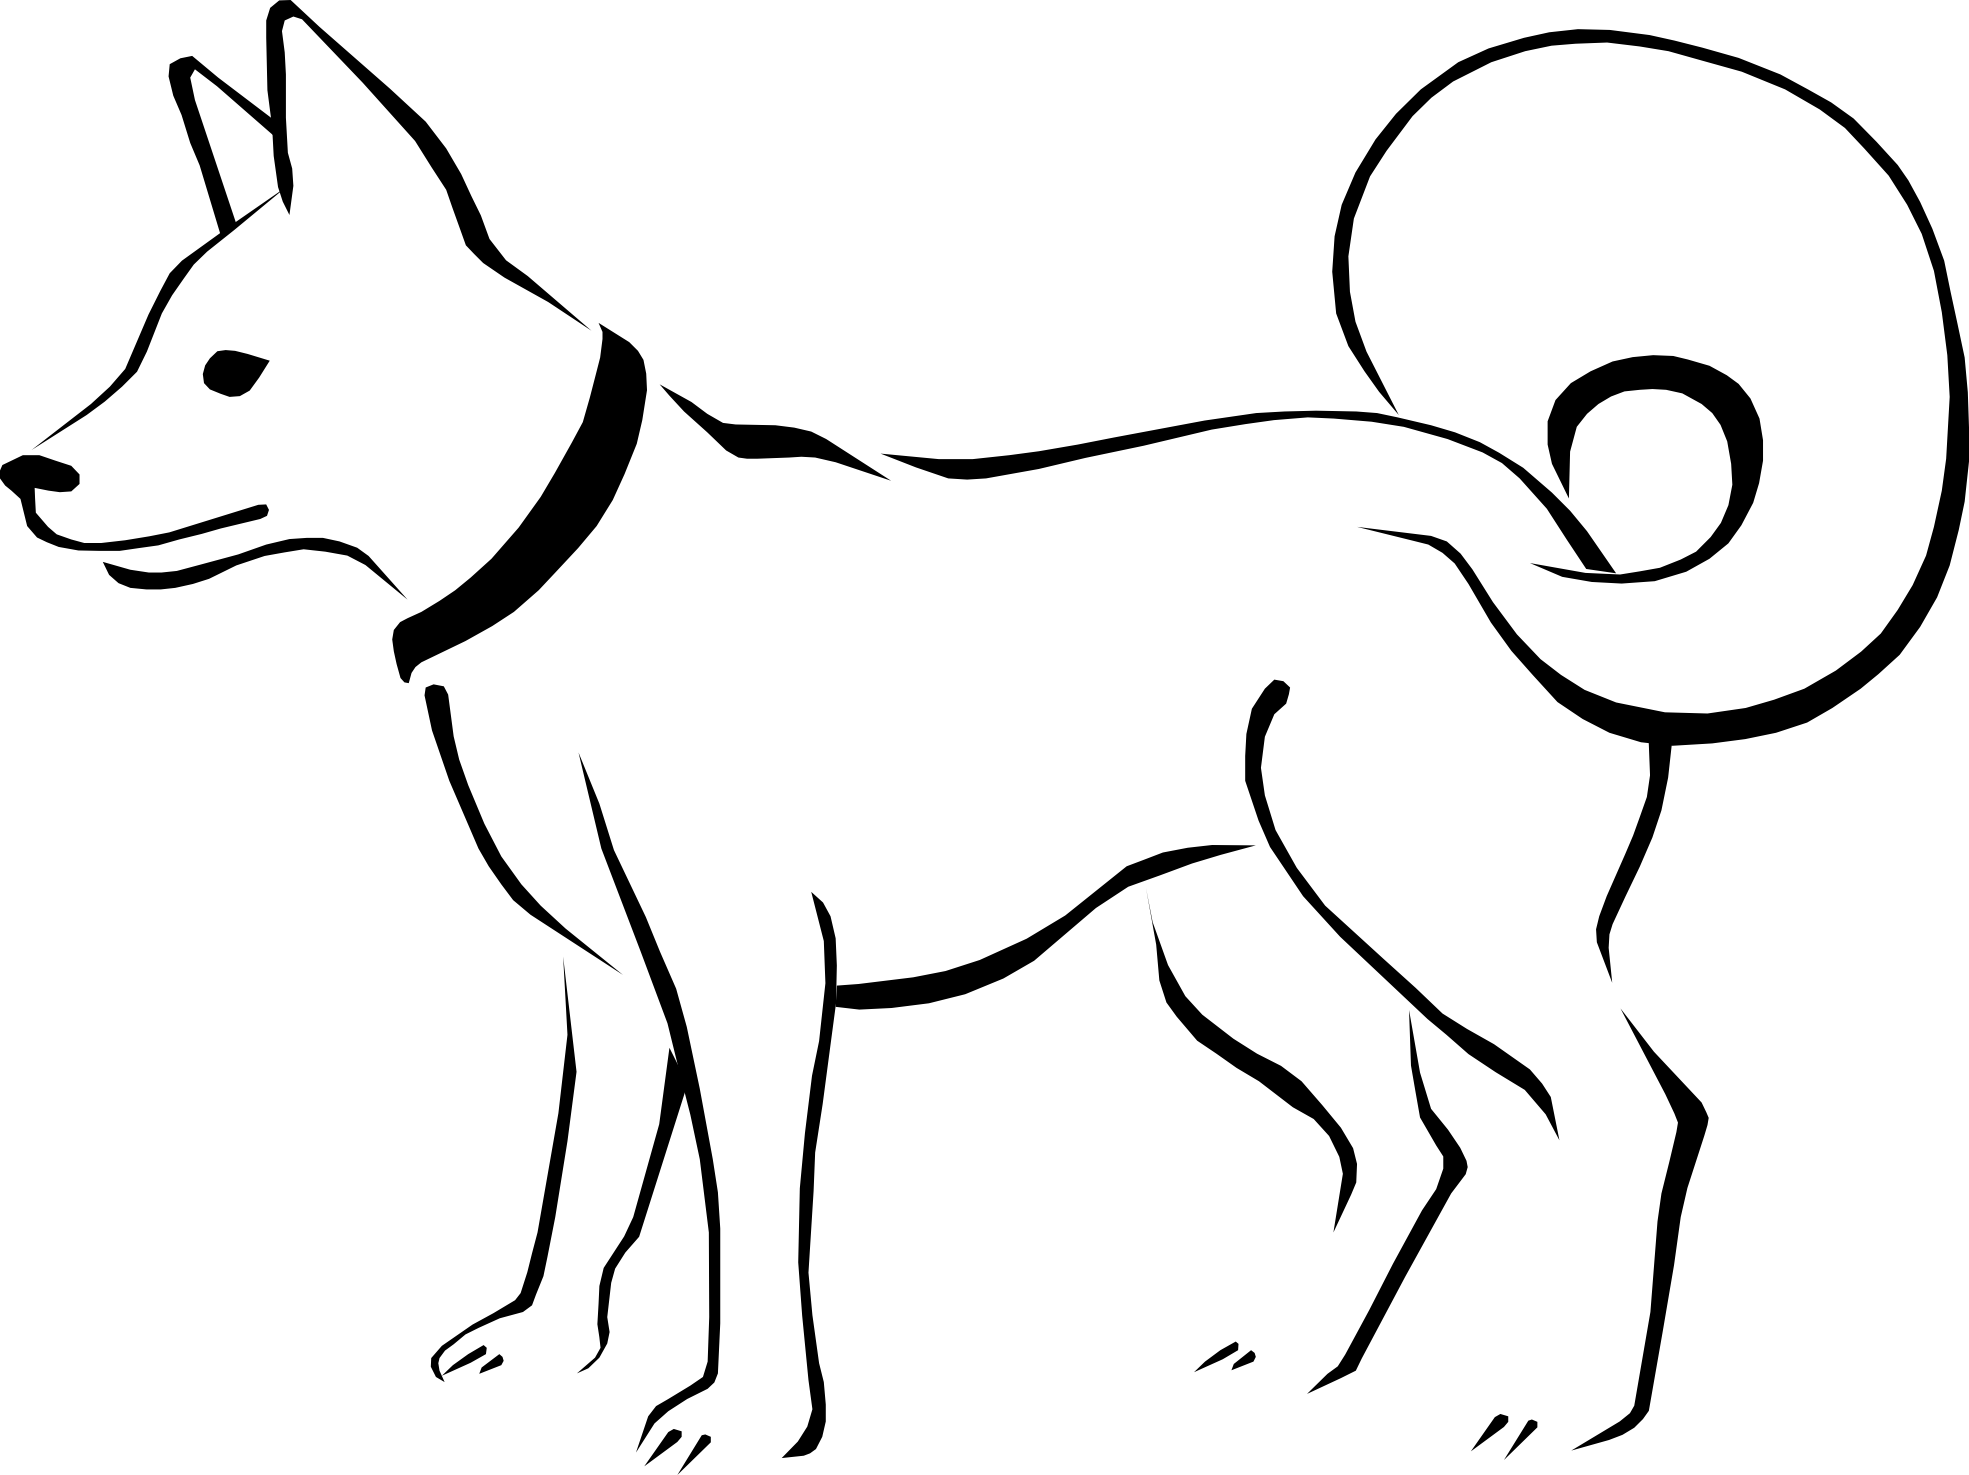 Black and white dog drawing.